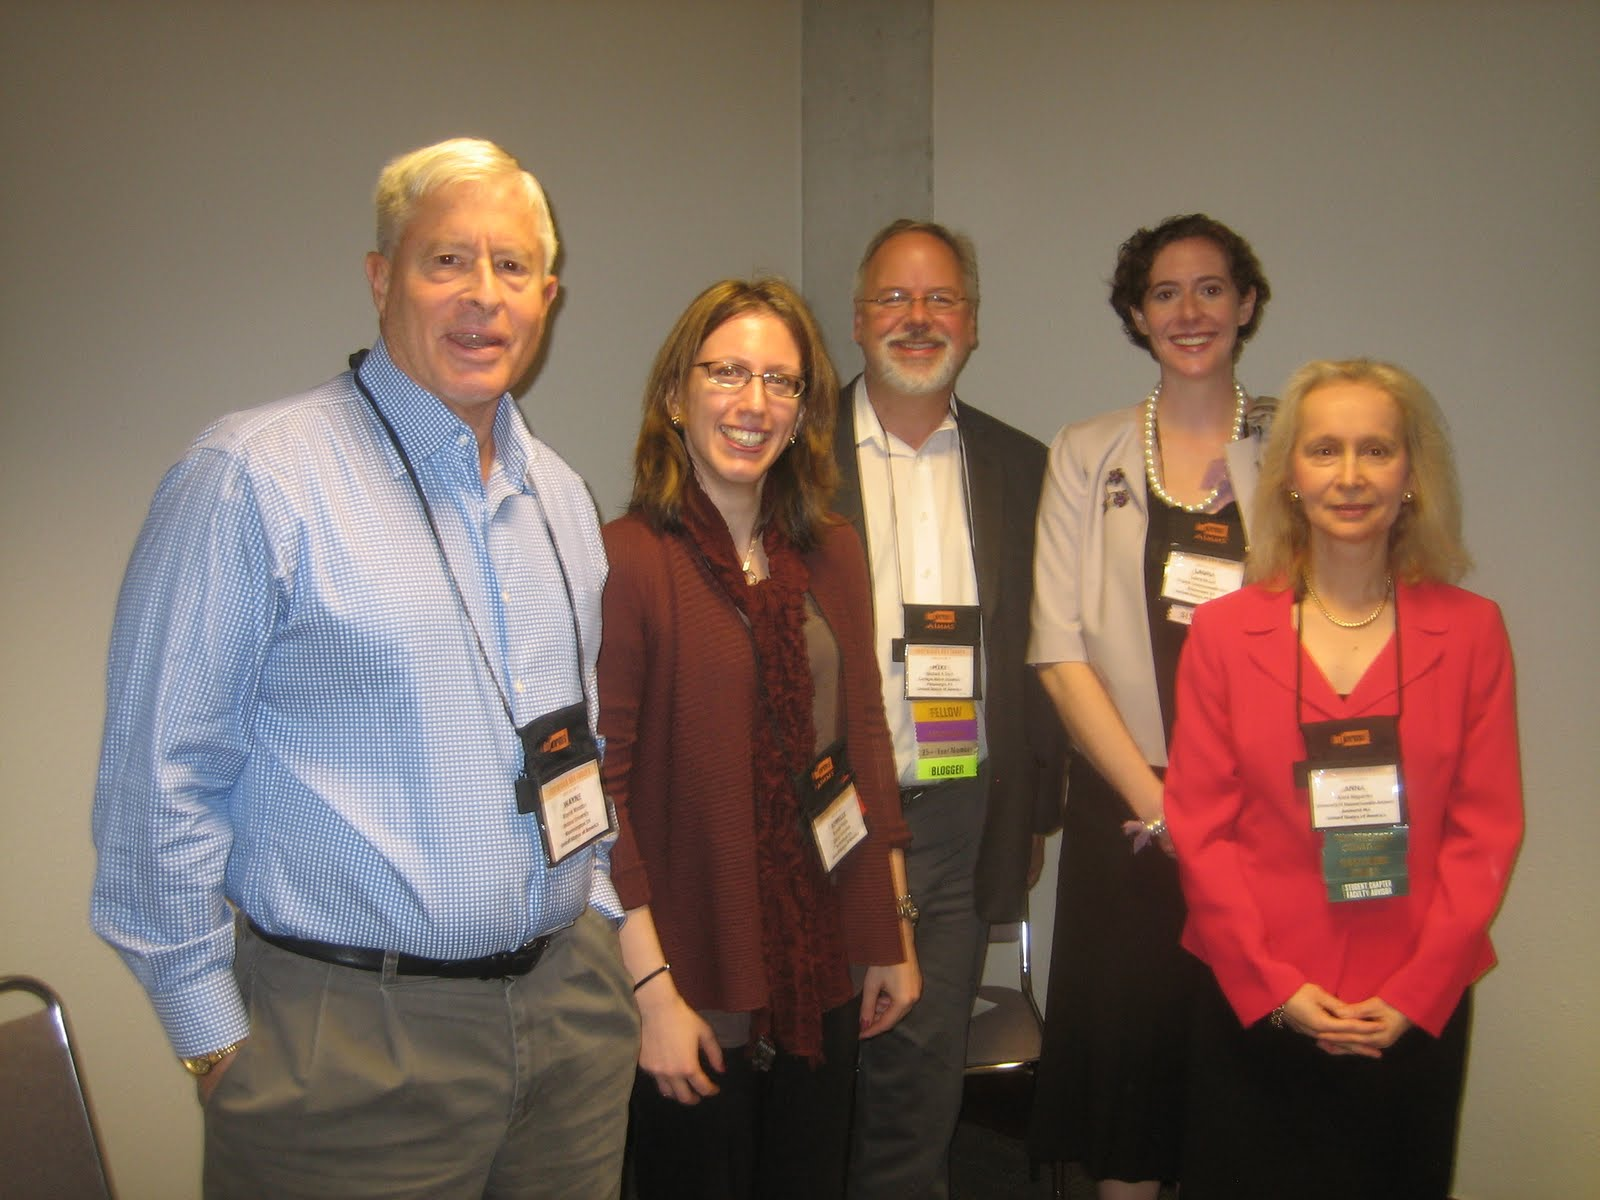 The social networking panelists at INFORMS